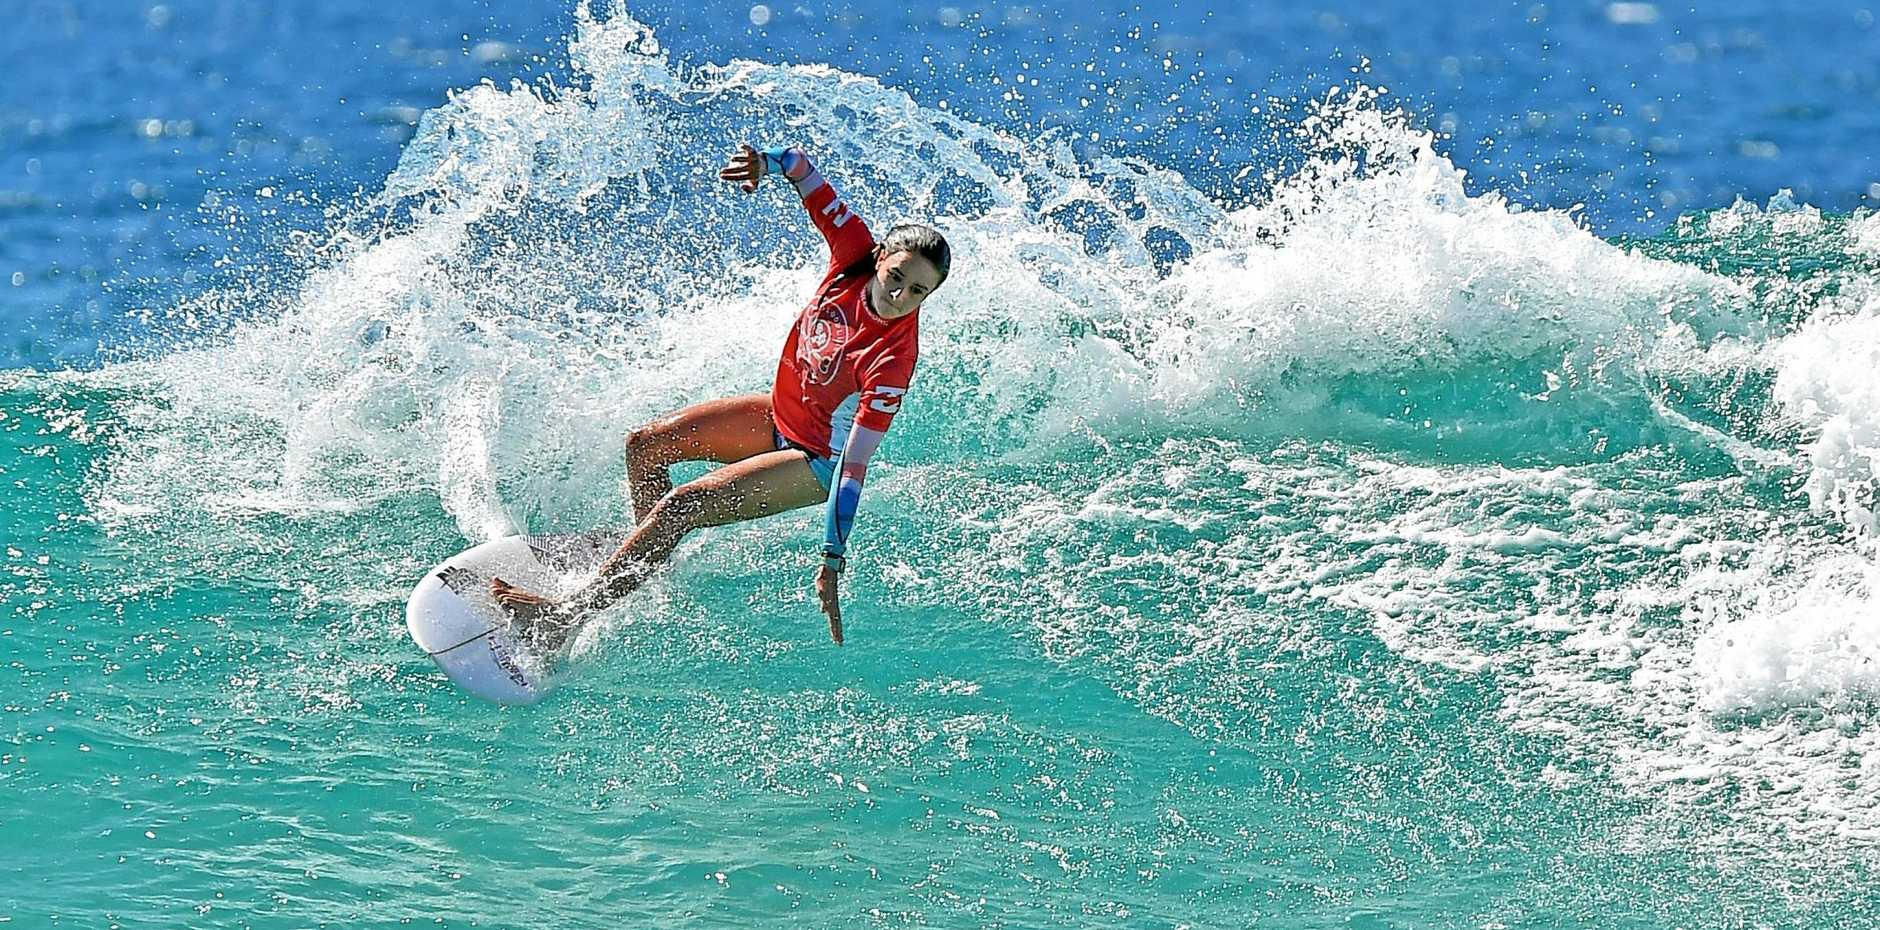 HOLLY Williams drives into a cutback on a perfect wall during the Billabong Parko's Grom Stomp at Currimundi Beach on her way to winning her heat in the Girls 16 years and Under.